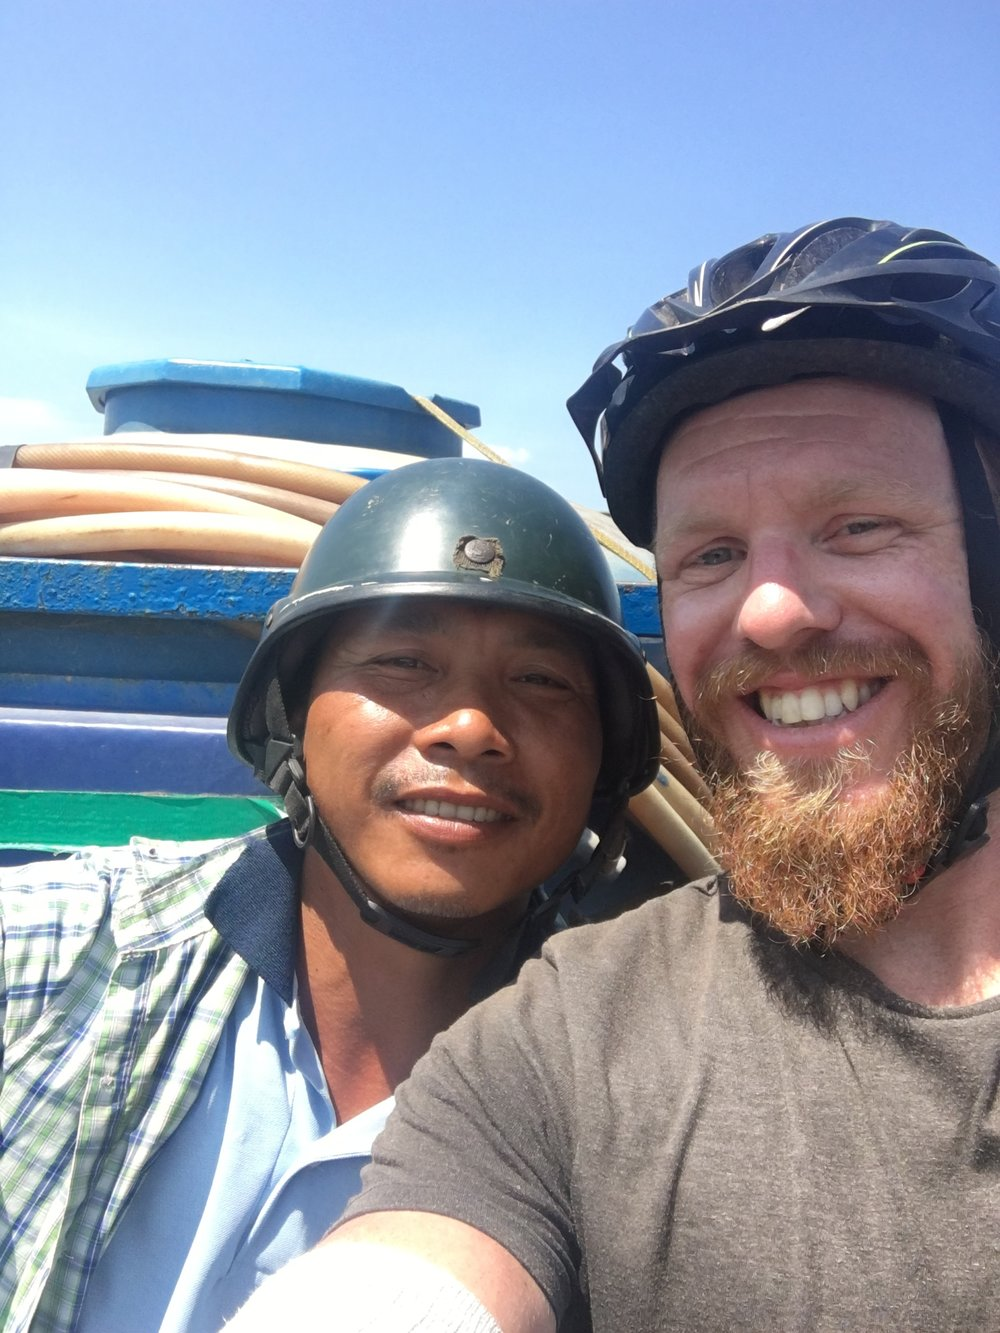 My Vietnamese friend who stopped to watch me pump up my tube and then escort 5 KM down the road and until he waved me on and turned off.